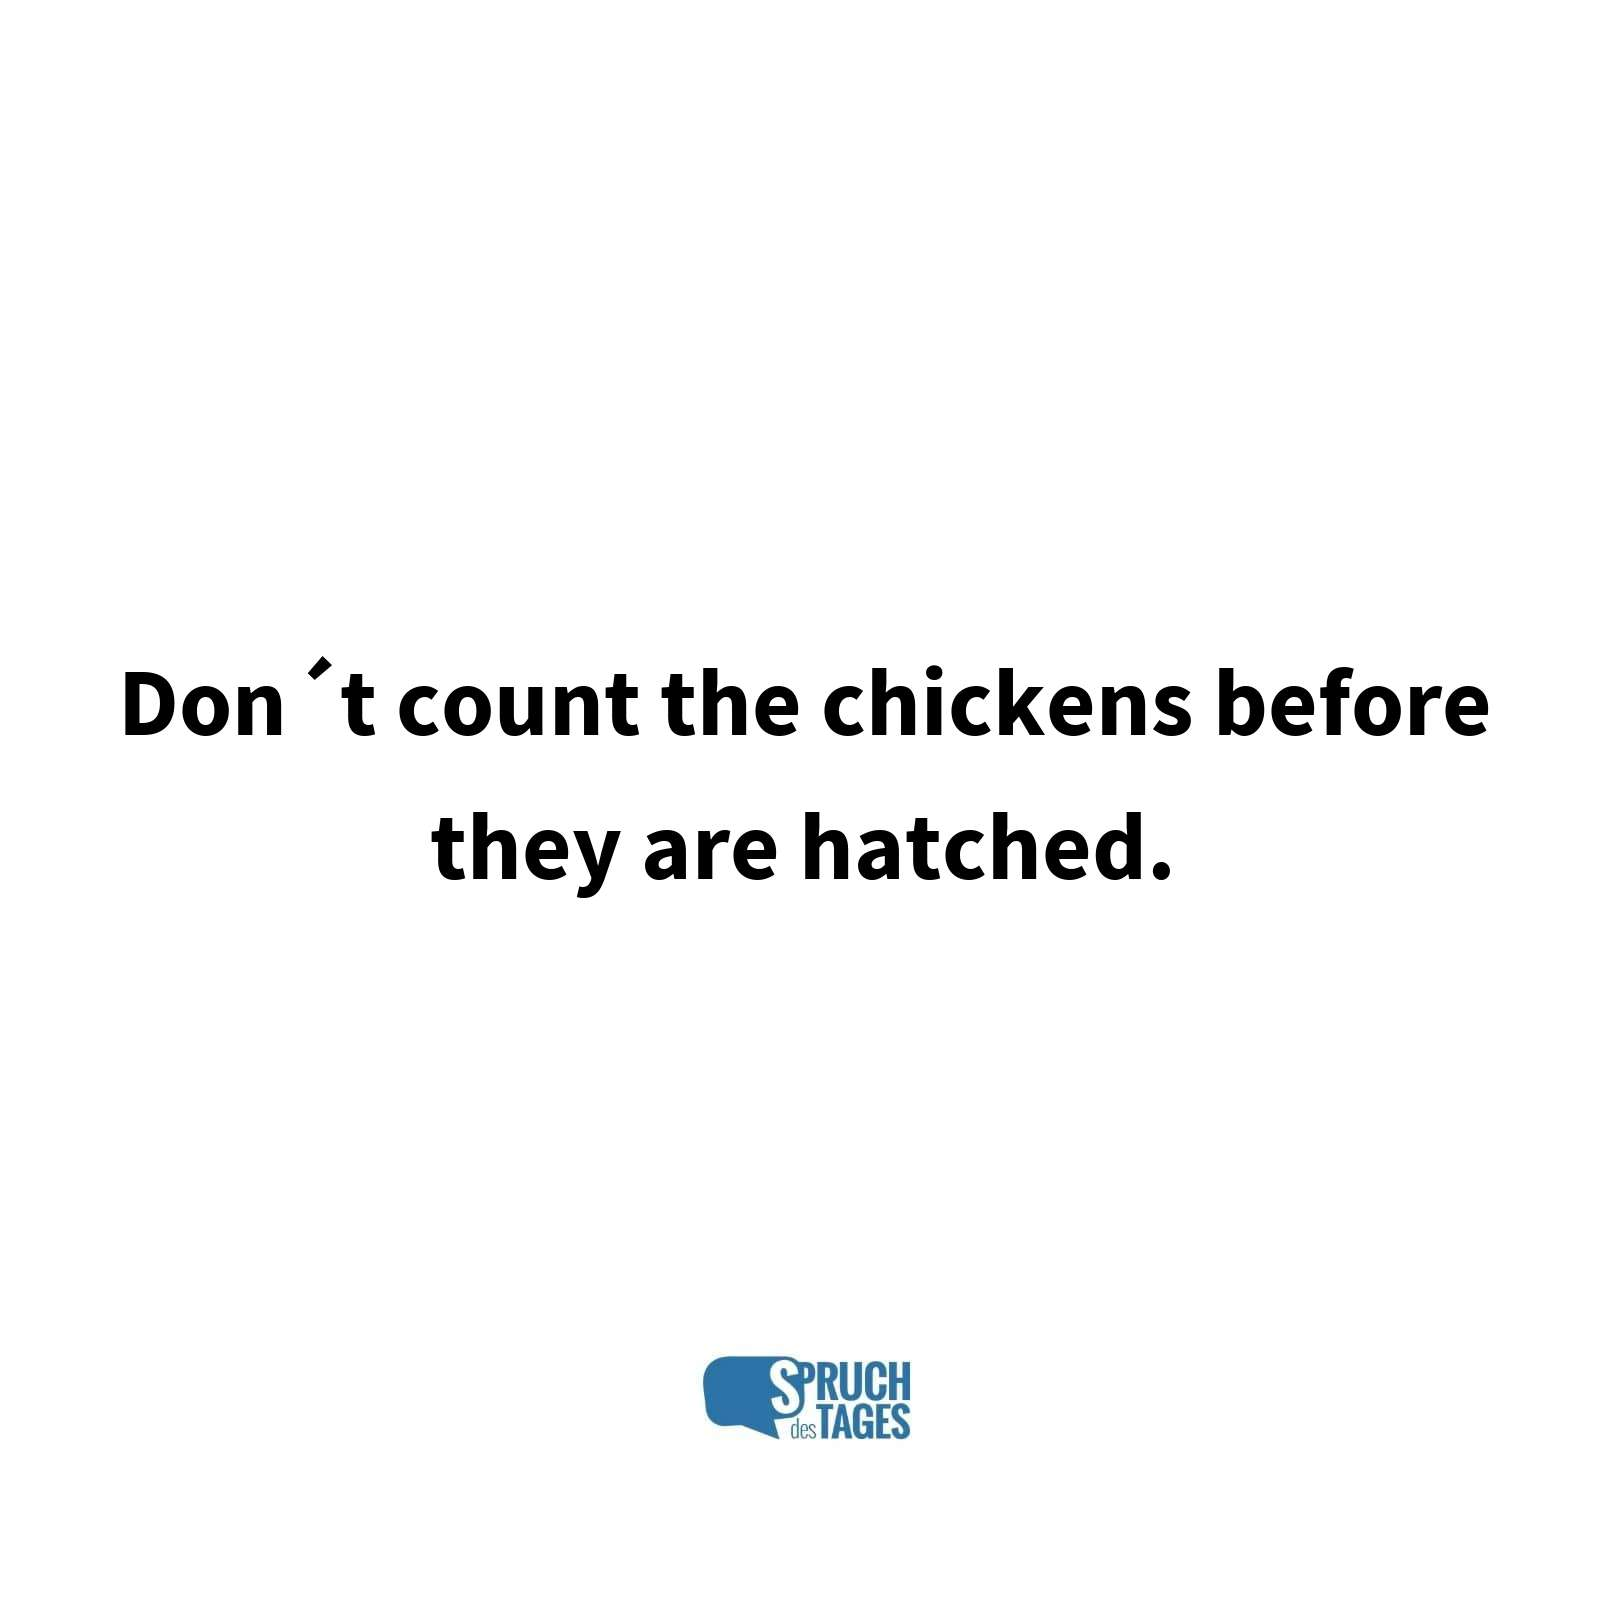 Don?t count the chickens before they are hatched.